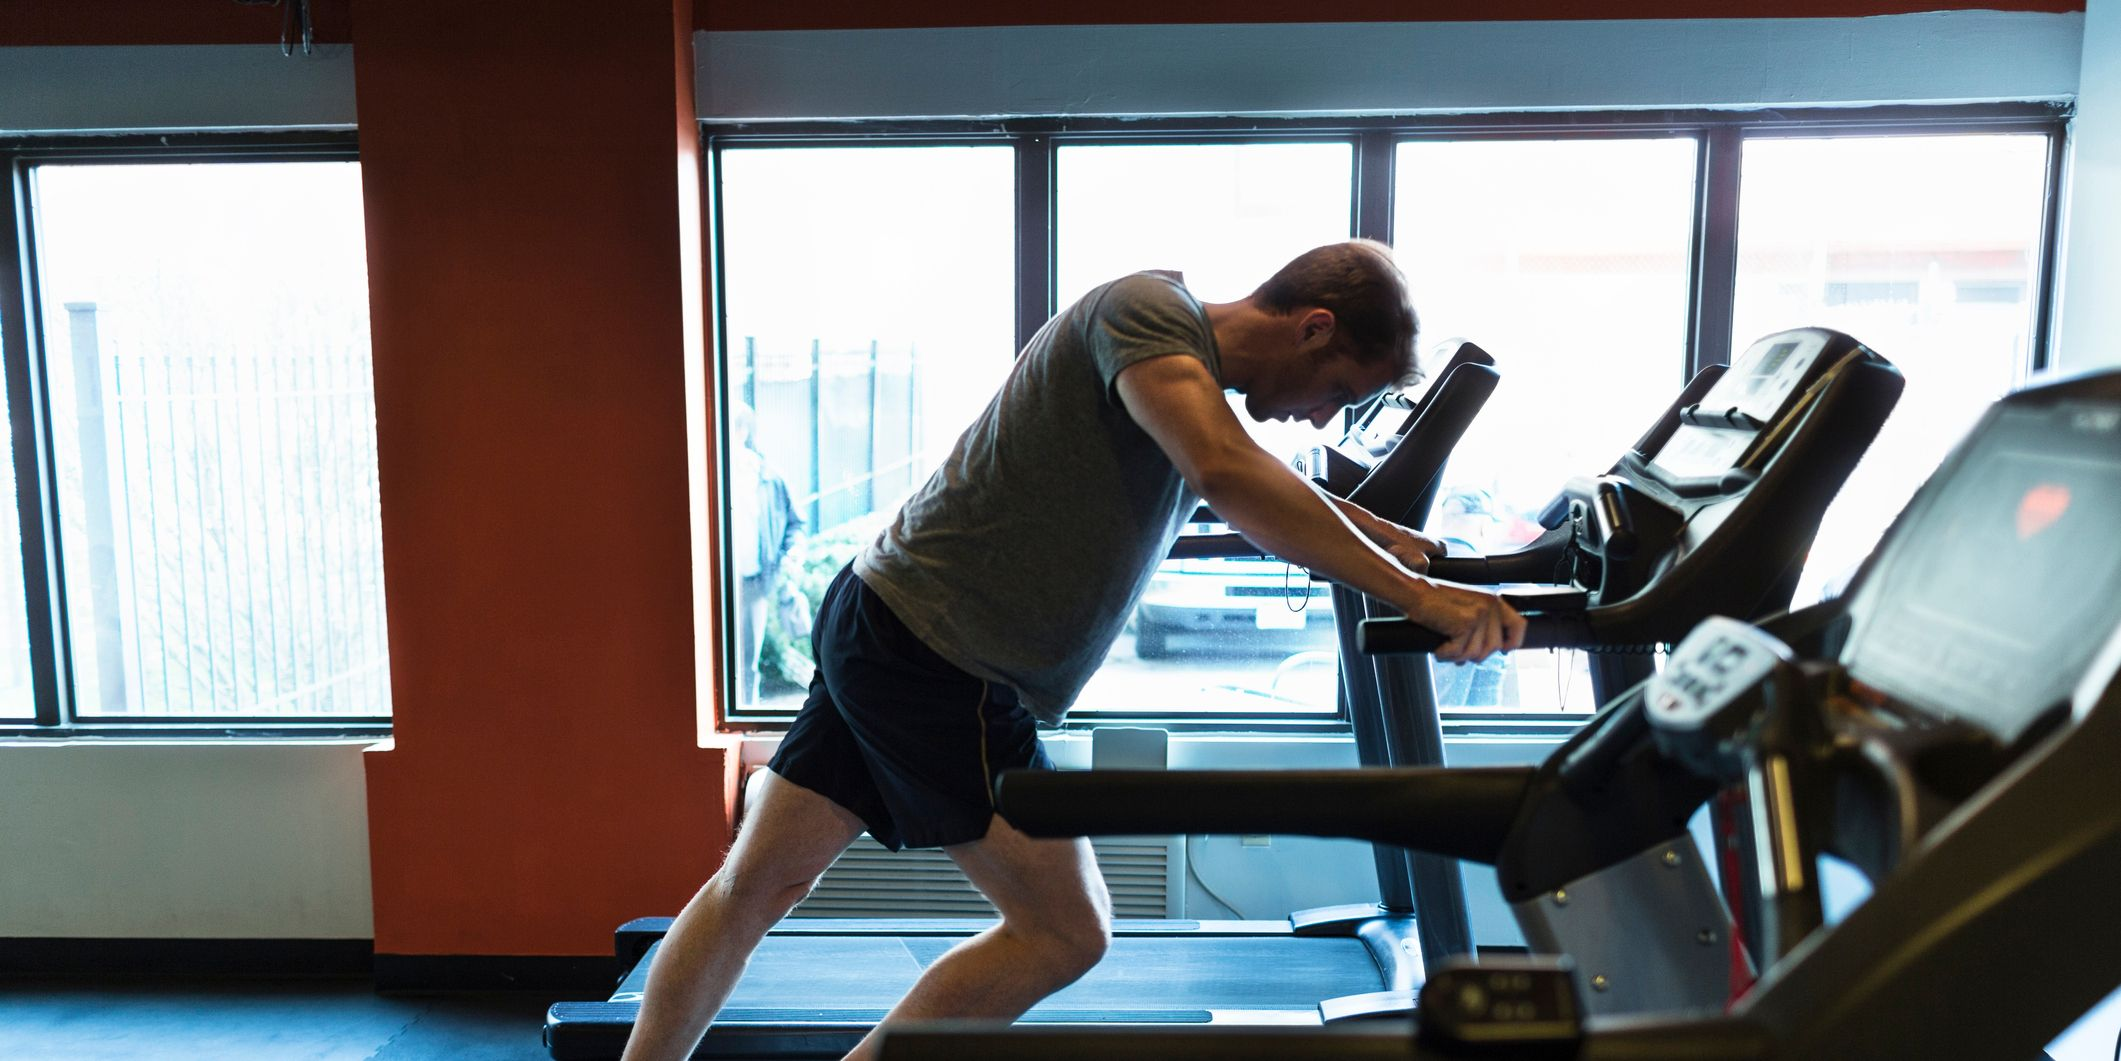 How to avoid getting injured on the treadmill